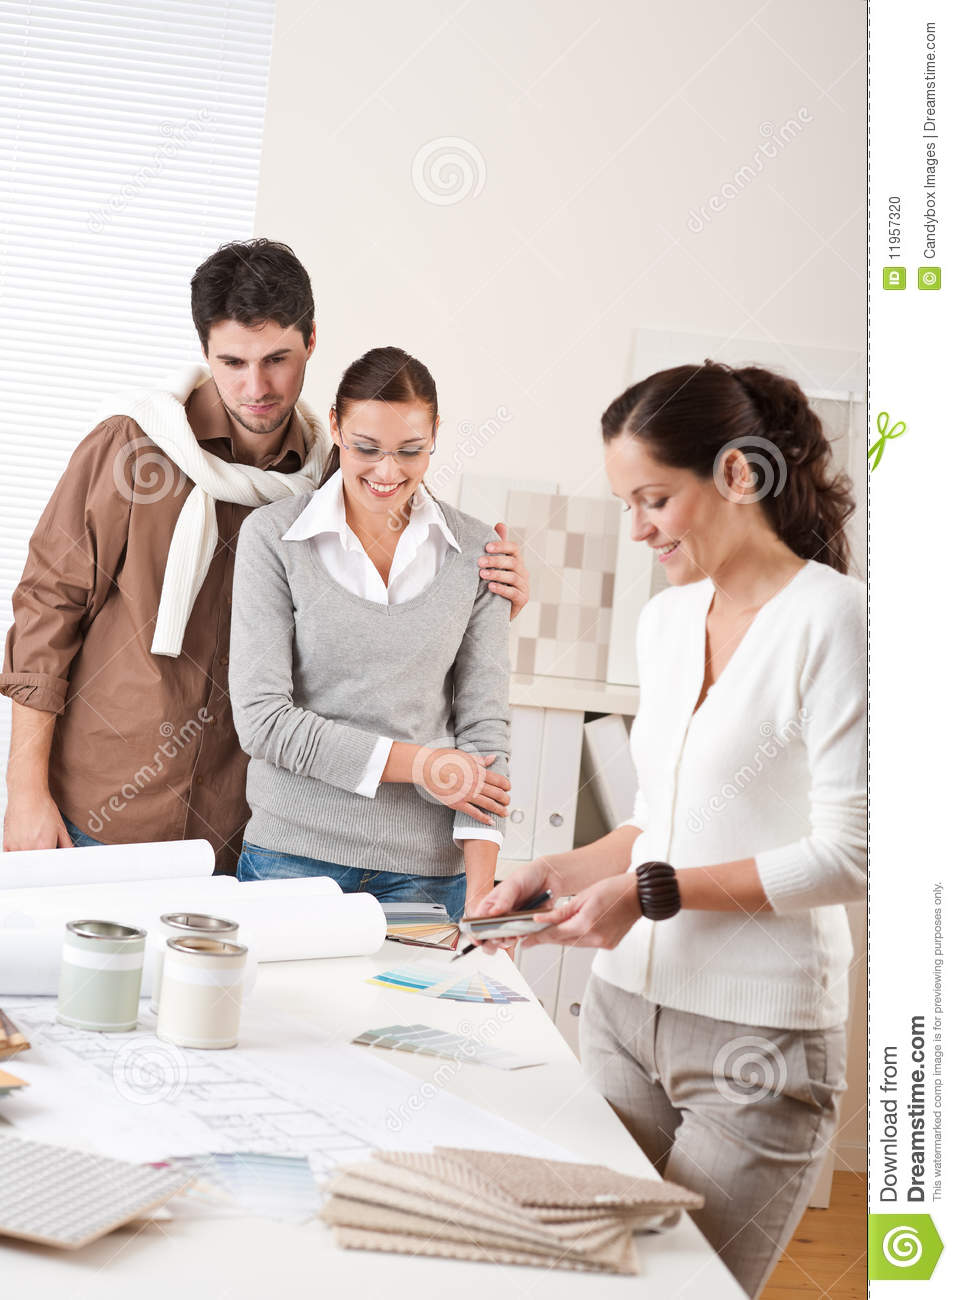 Interior Designers With Clients Female Interior Designer With Two Clients Stock Photo  Image